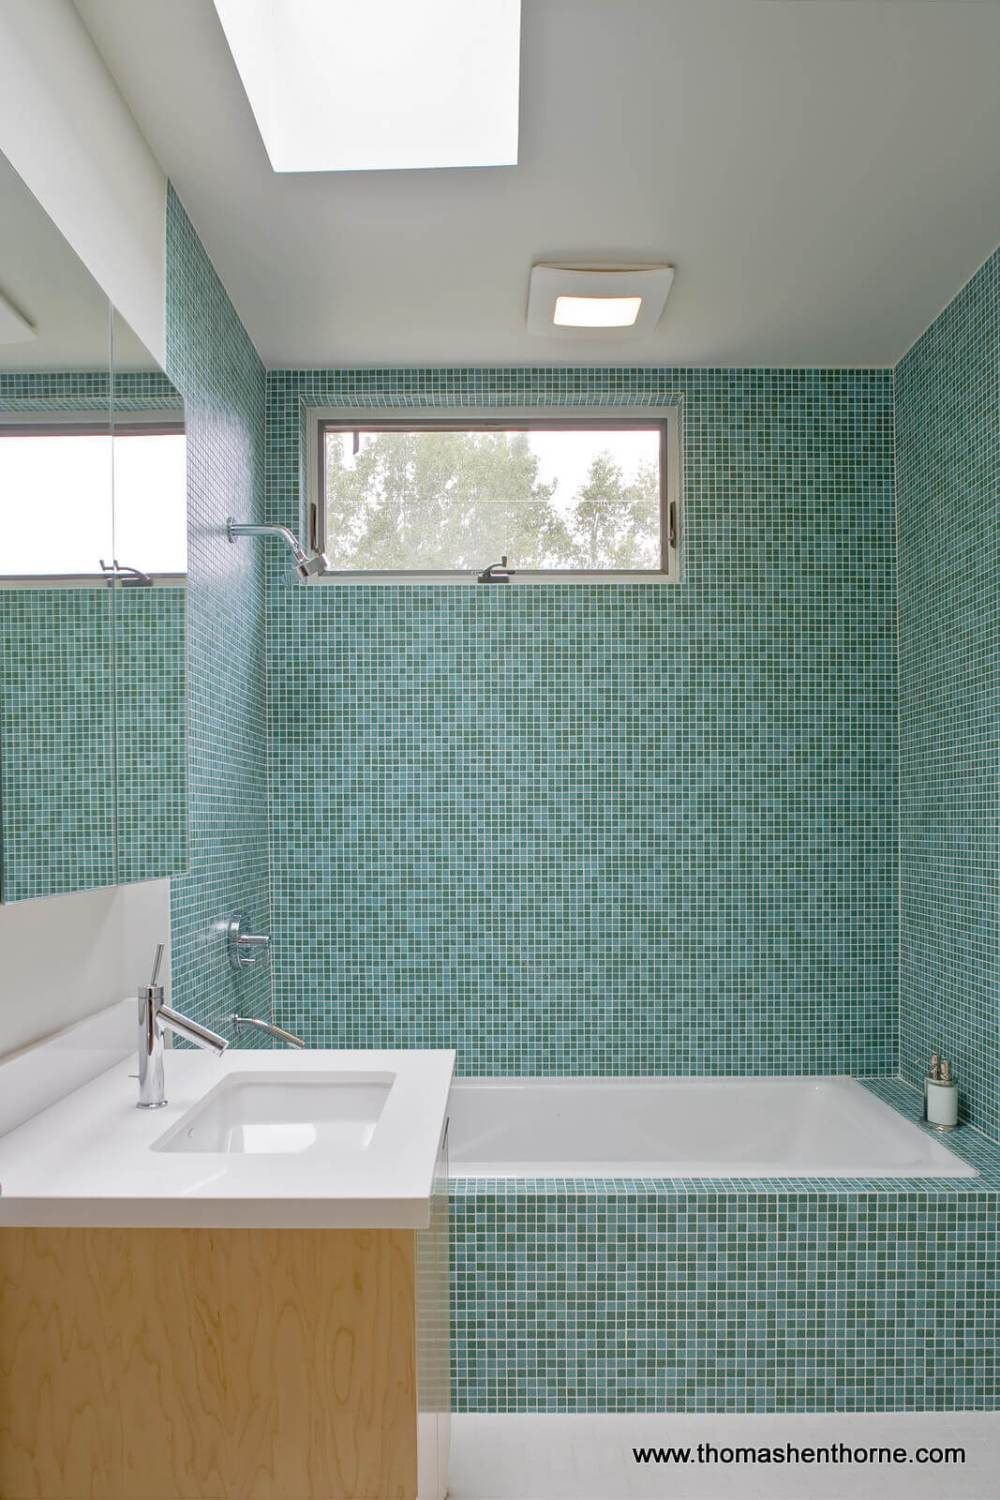 Bathroom with mosaic tile